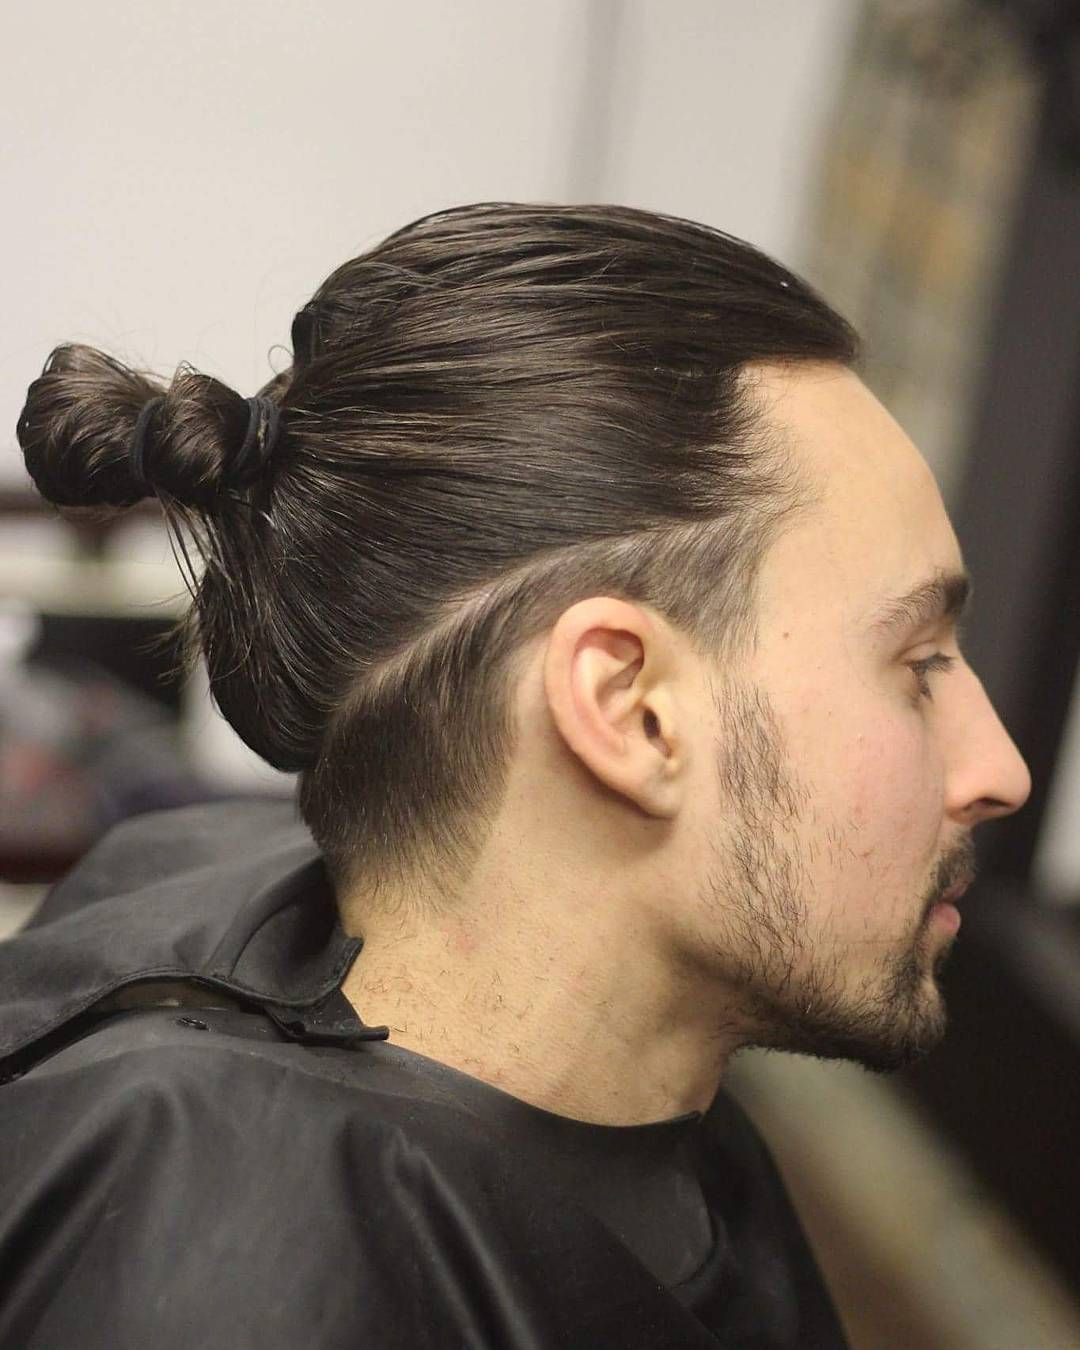 long hair ideas for men | long hair ideas for men | undercut